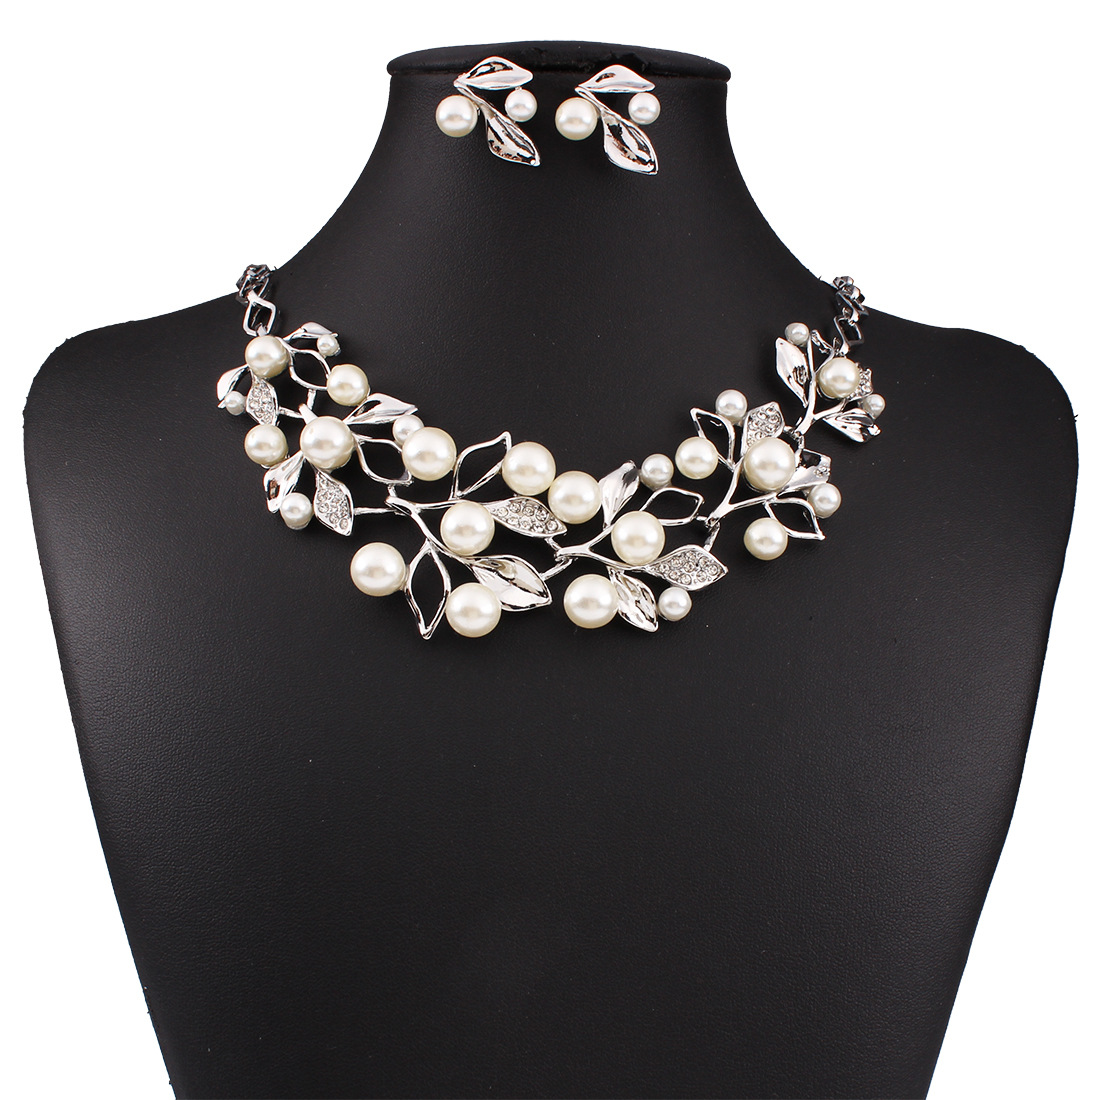 Hot Selling New Fashion Luxurious Big Imitation Pearl Short Clavicle Chain  Necklace Earrings Dubai Jewelry Sets